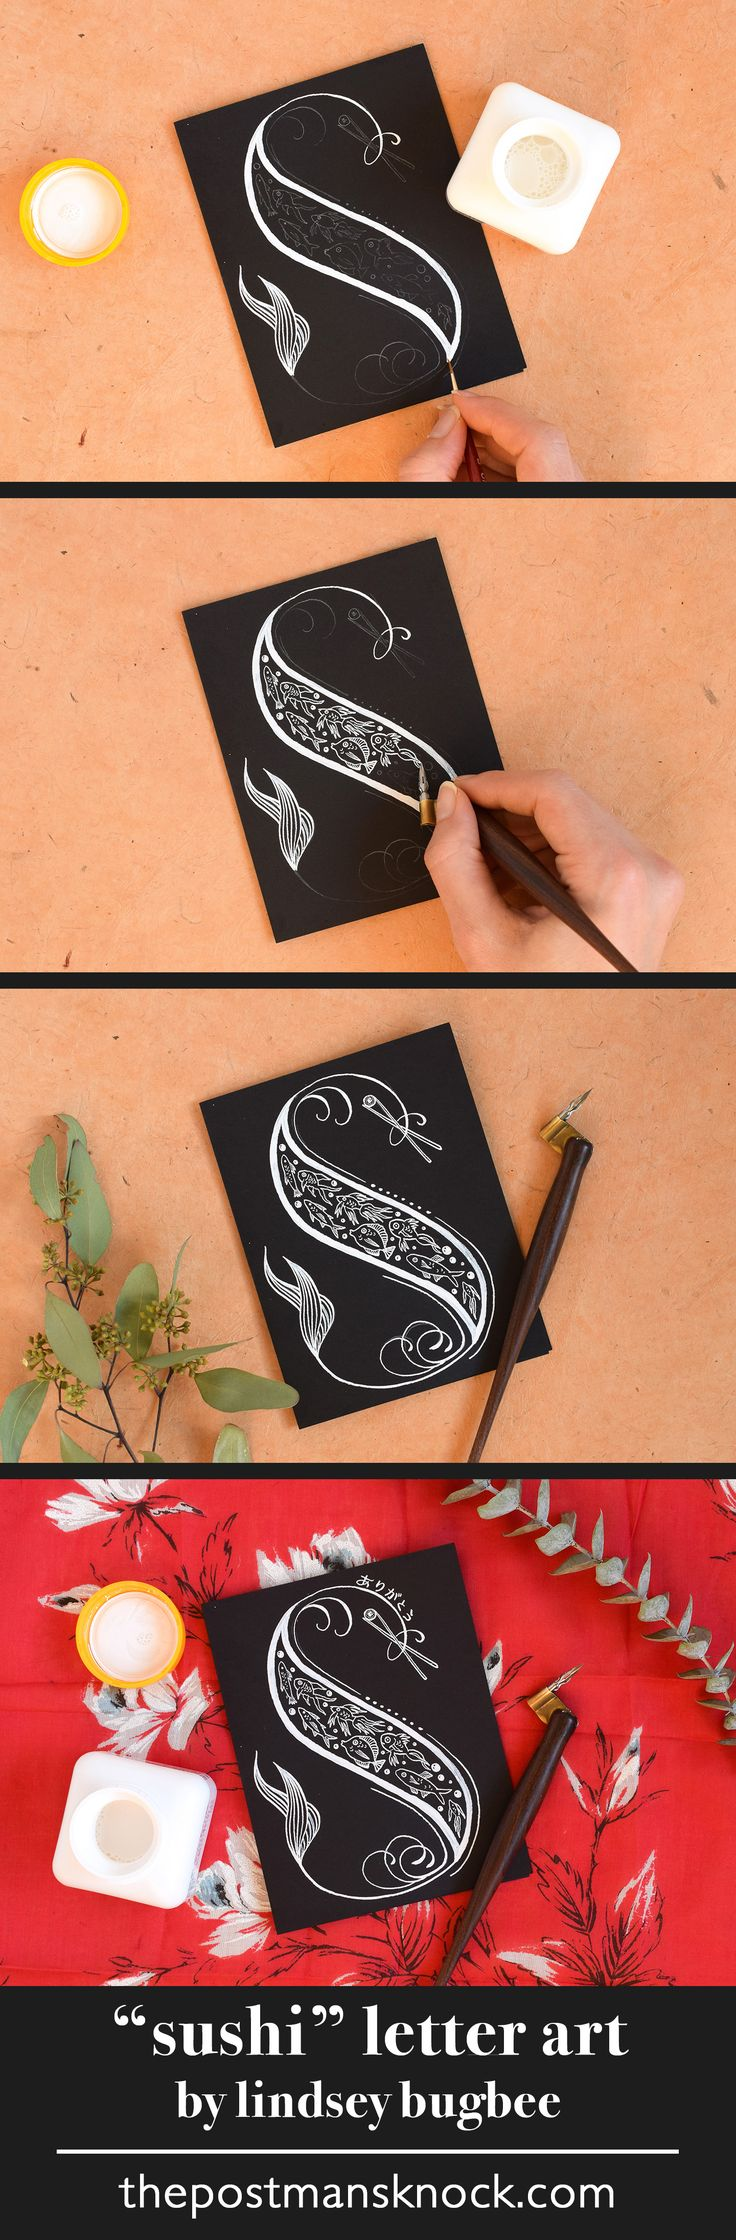 """""""Sushi"""" letter art made with white calligraphy ink"""